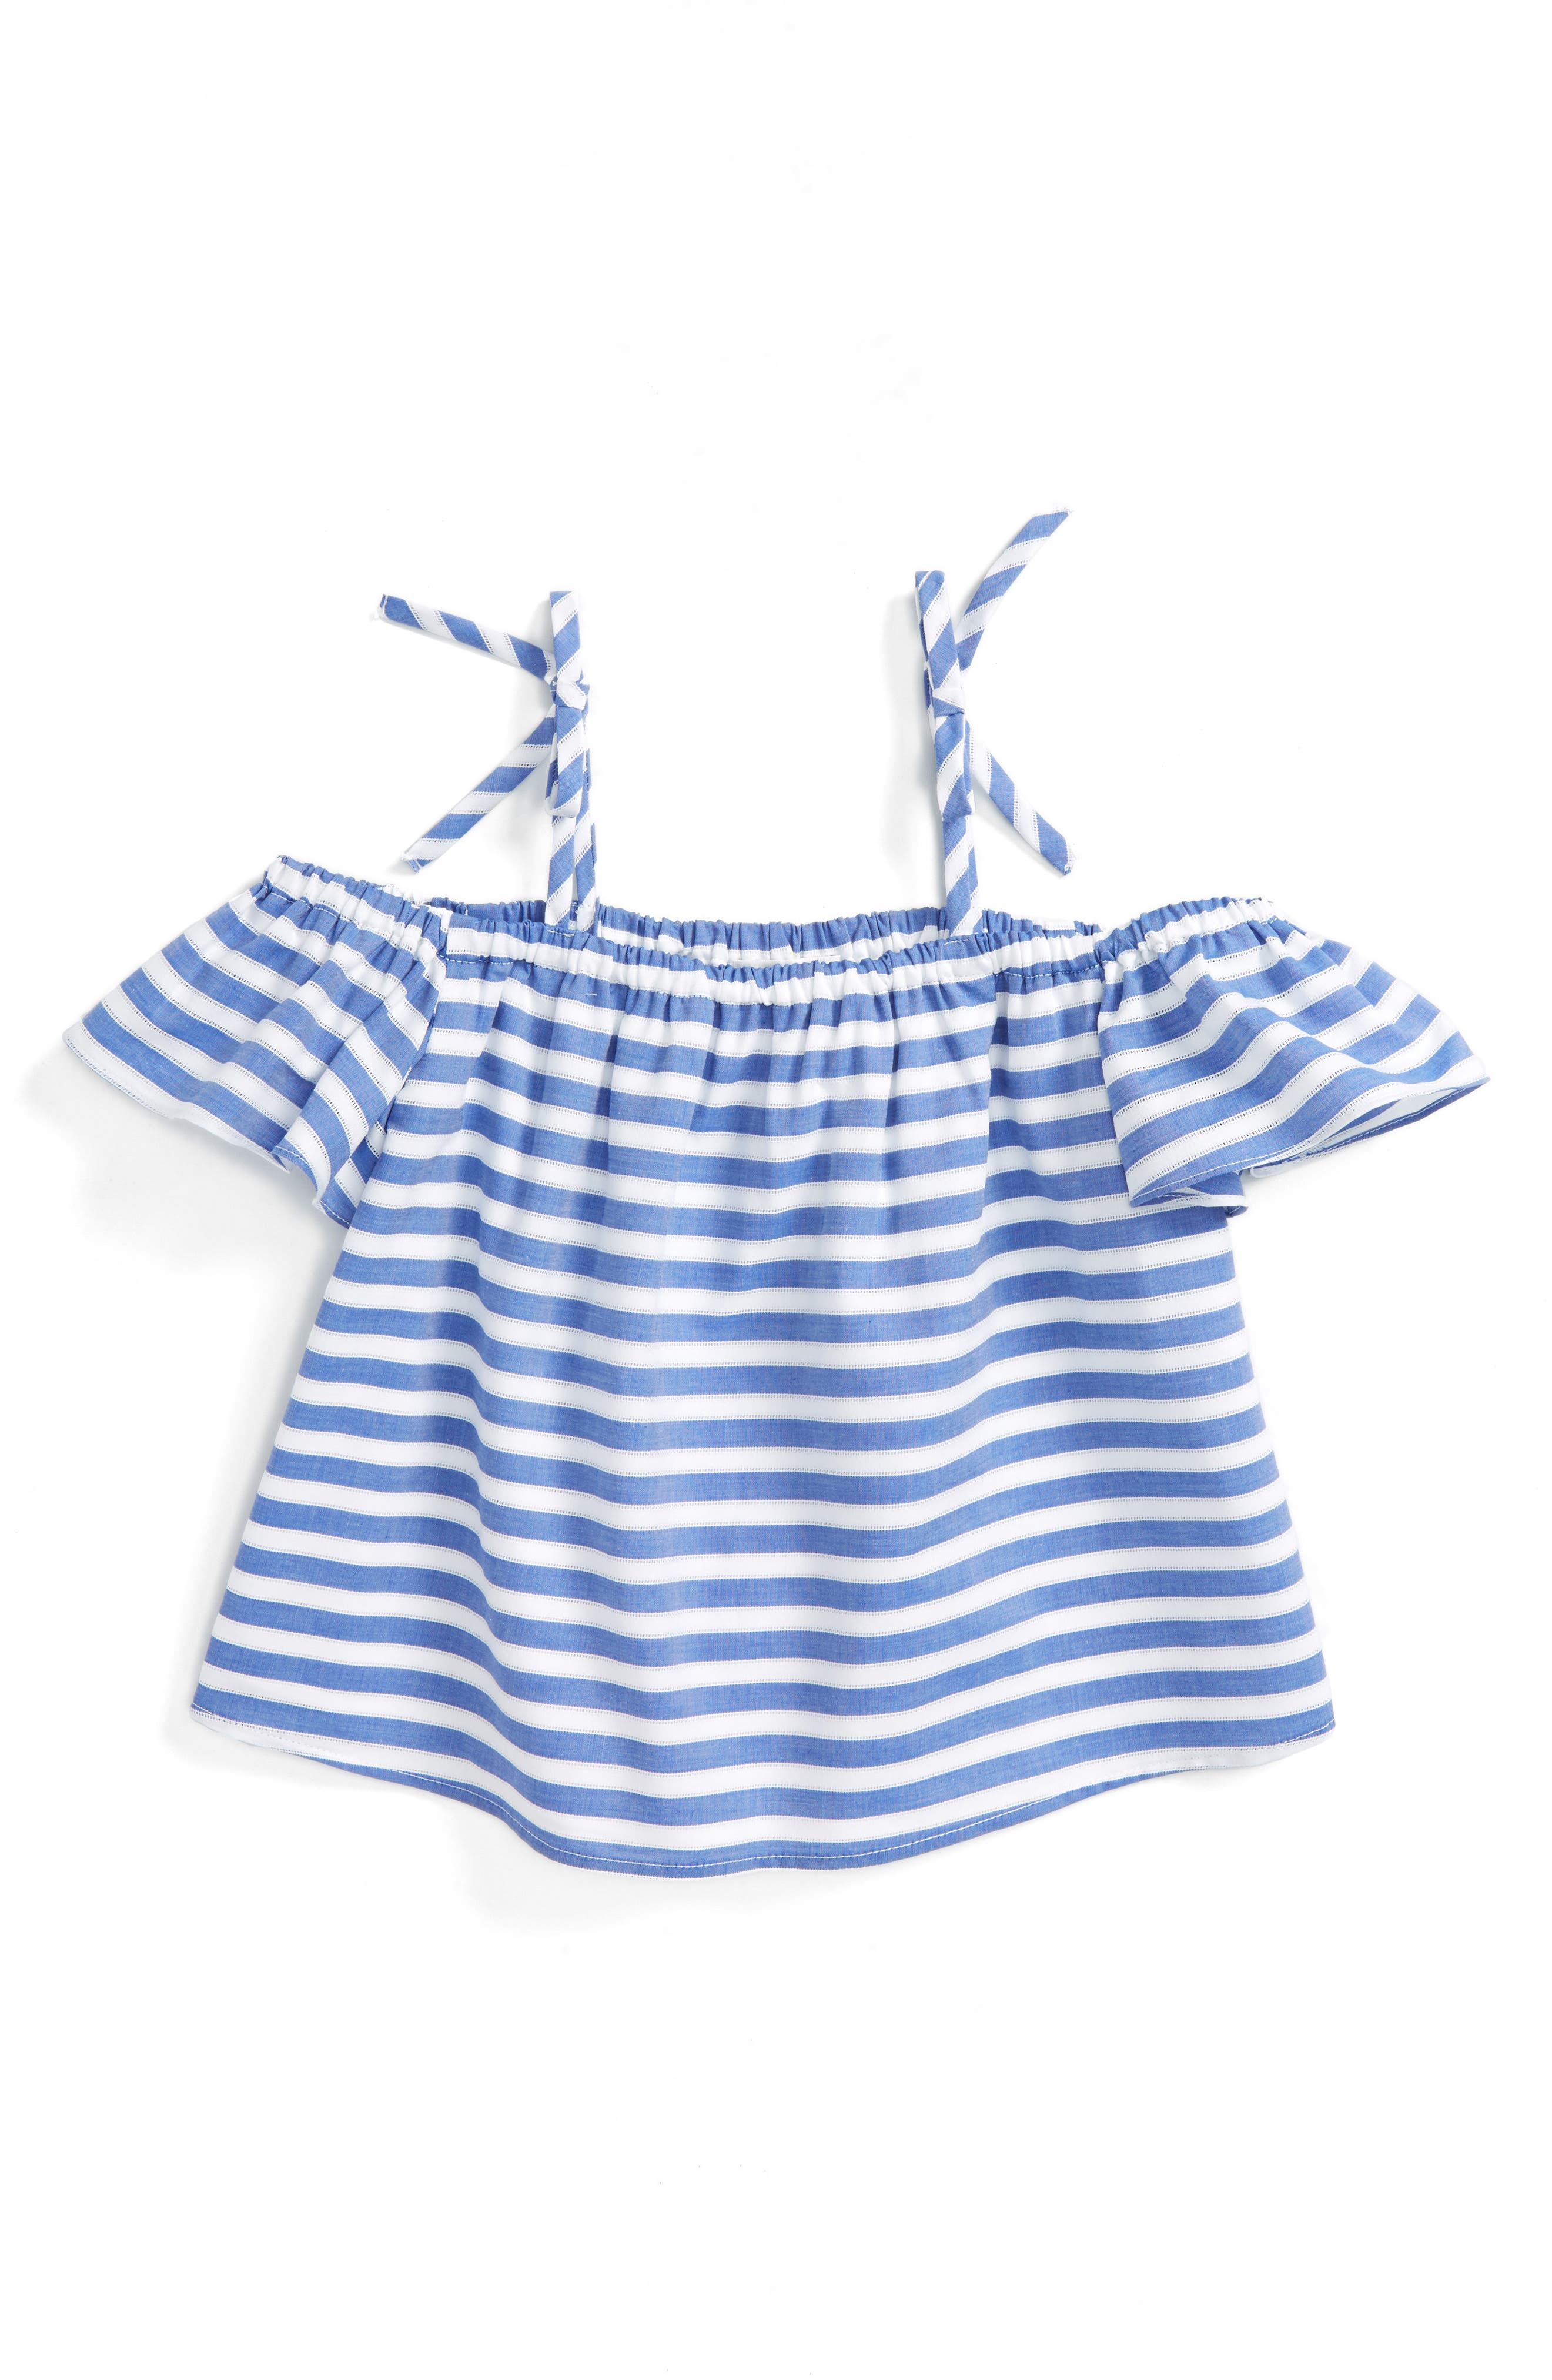 Main Image - Milly Minis Chambray Off the Shoulder Top (Toddler Girls, Little Girls & Big Girls)